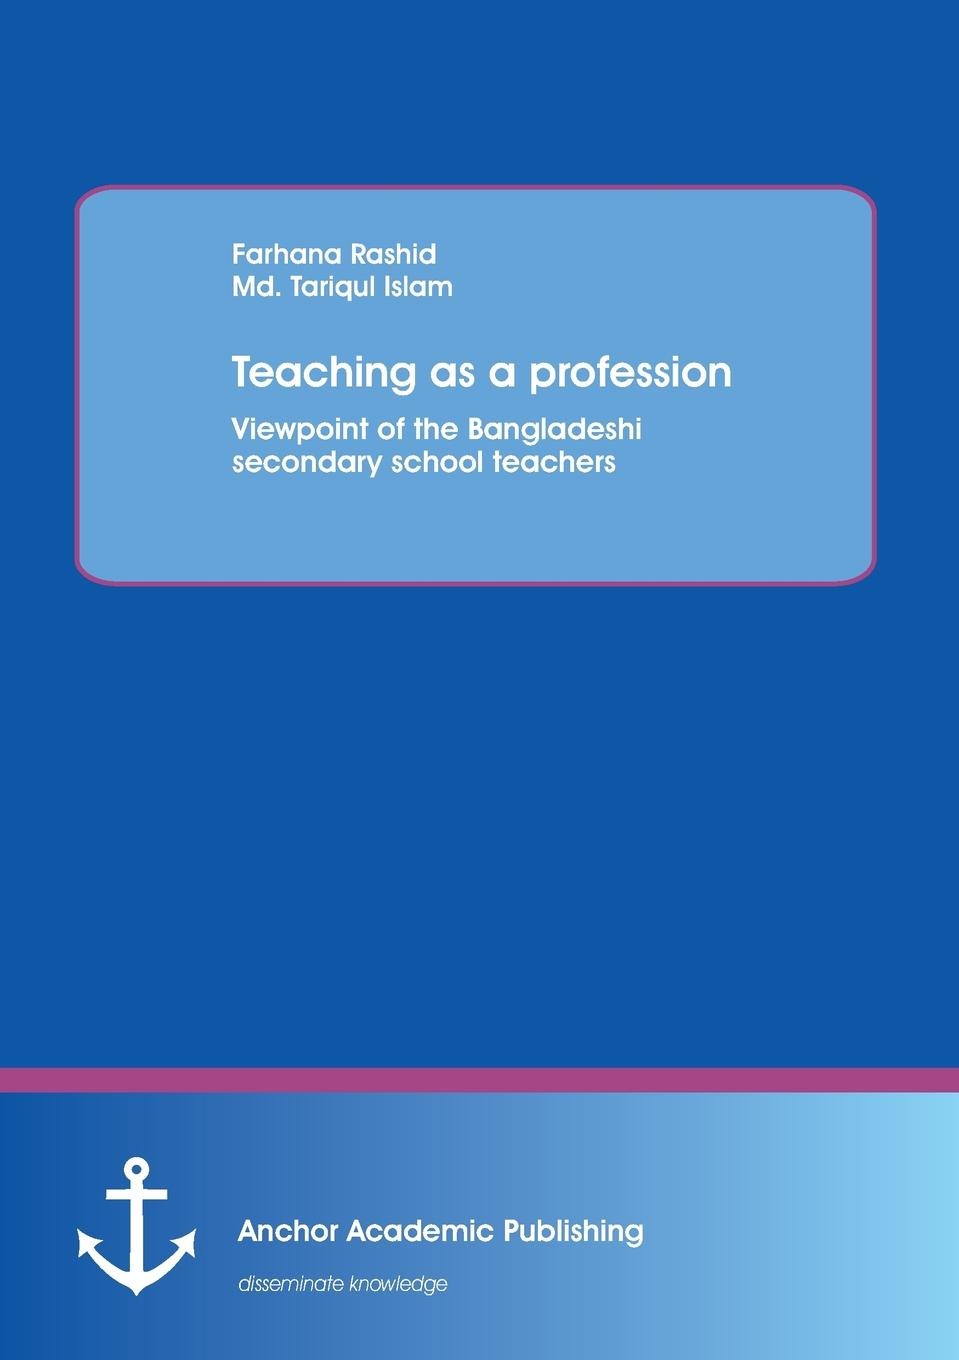 Md. Tariqul Islam, Farhana Rashid Teaching as a profession mohamed mbarouk suleiman teachers experiences of teaching science with limited laboratory resources